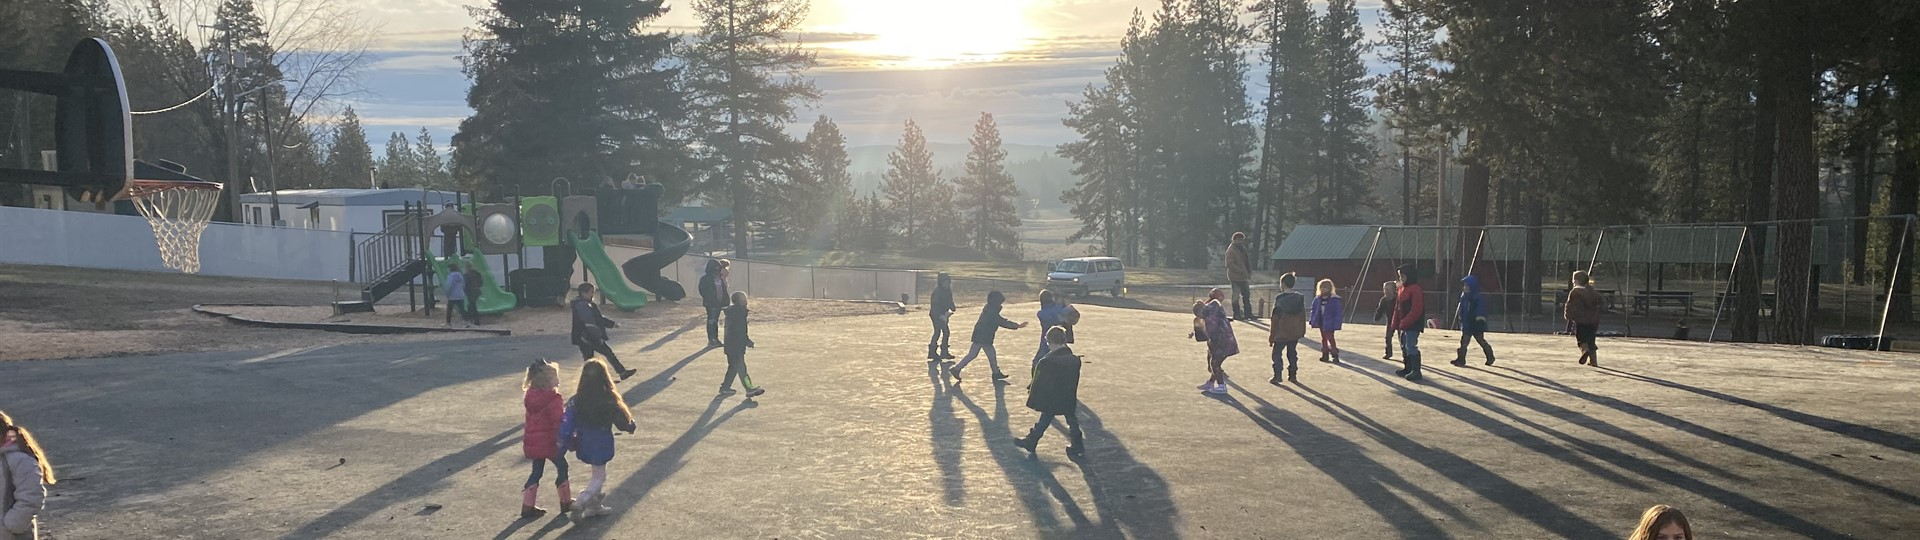 Students playing on playground at Potlatch Elementary